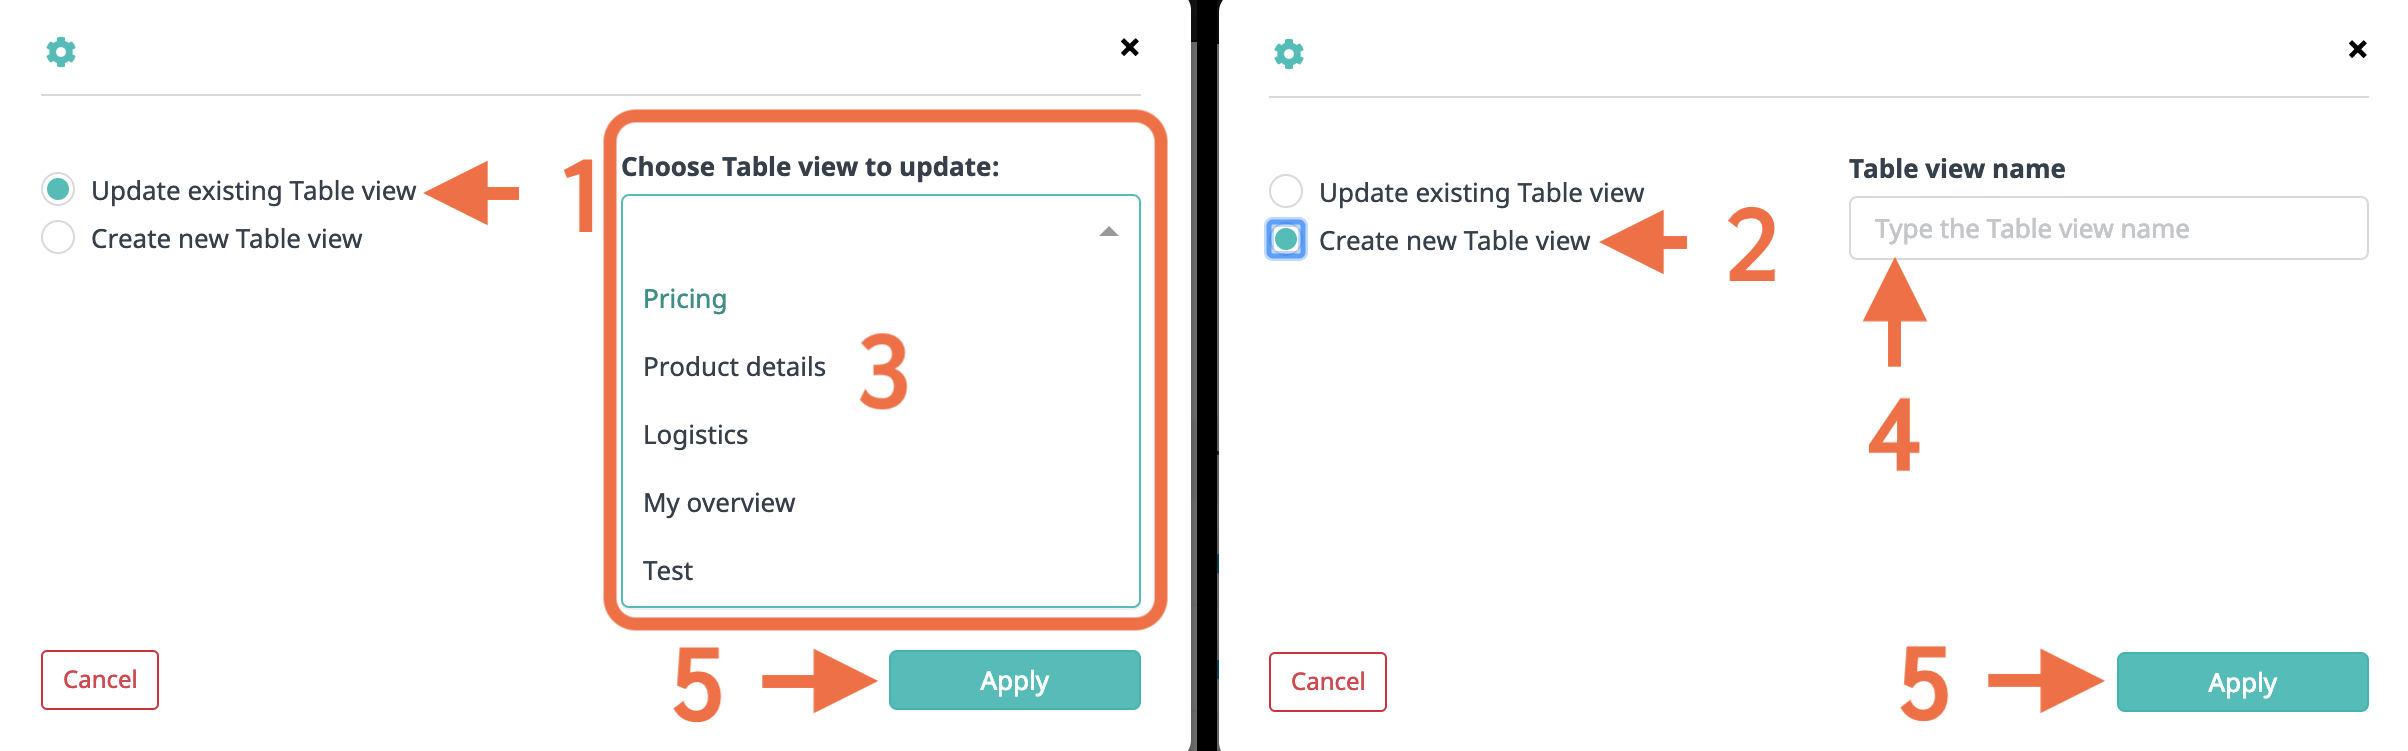 Update or create table view